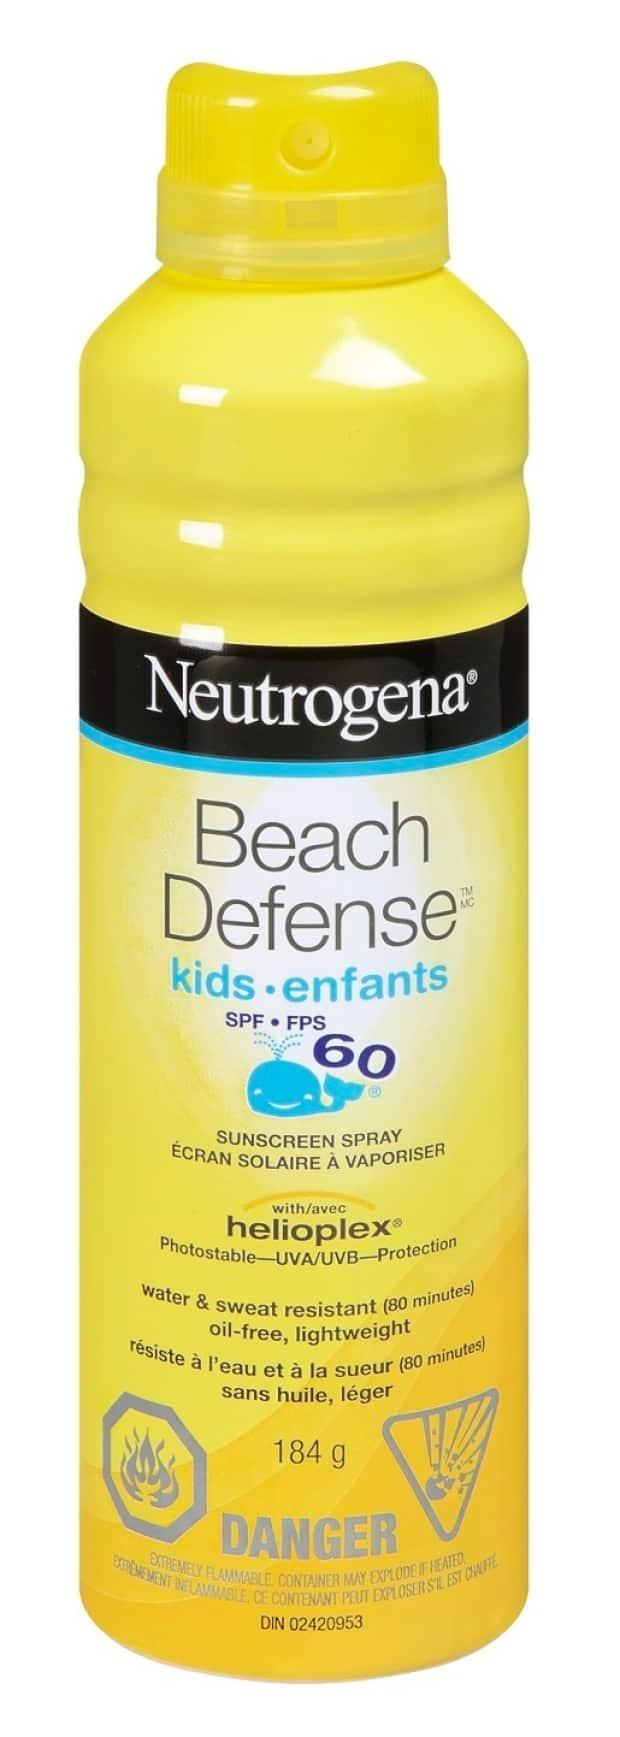 A closeup image of a sample of Neutrogena Beach Defense Kids SPF 60 Spray — a sunscreen product that is being recalled by Johnson & Johnson. The company  is also recalling Neutrogena Ultra Sheer children and adult sunscreen products after elevated levels of benzene were detected. (healthycanadians.gc.ca - image credit)